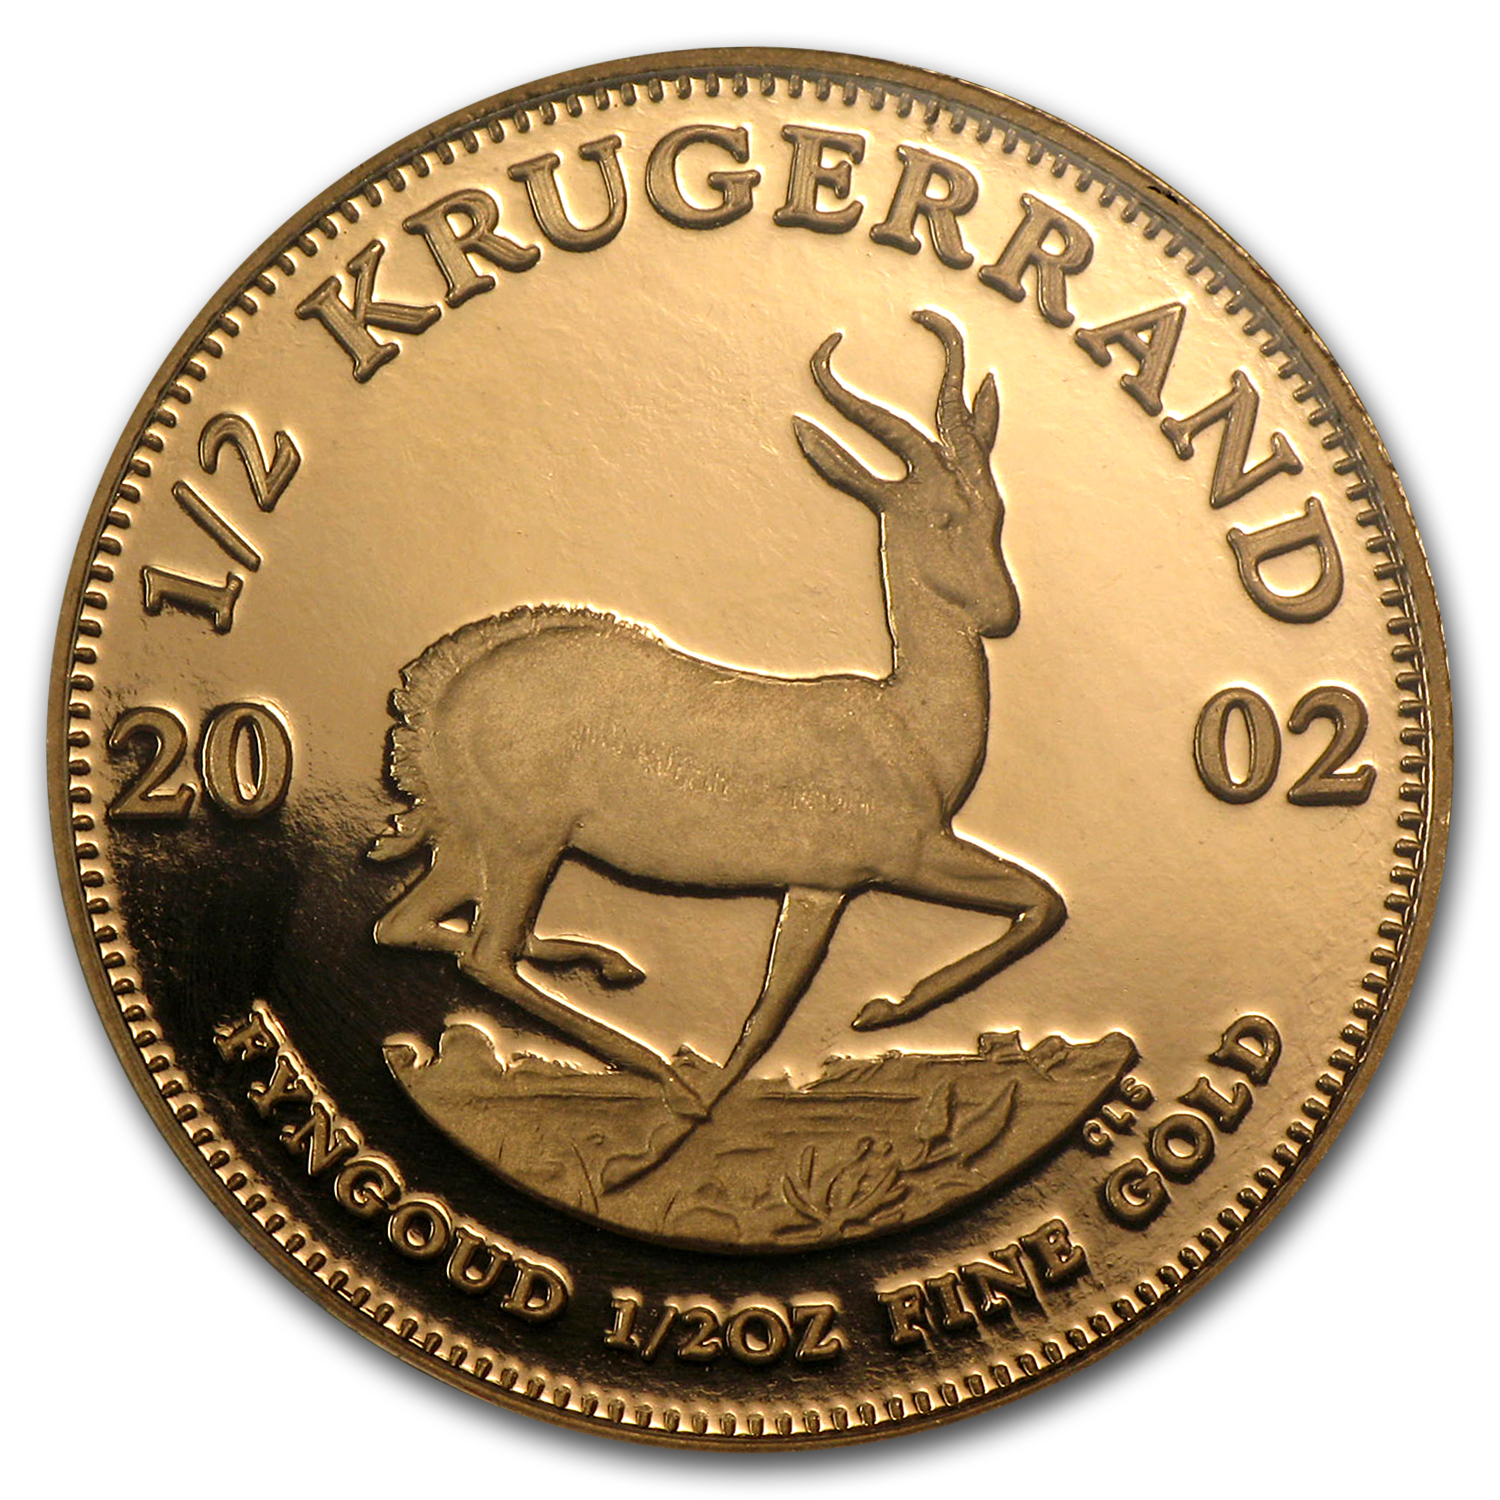 2002 South Africa 1/2 oz Proof Gold Krugerrand